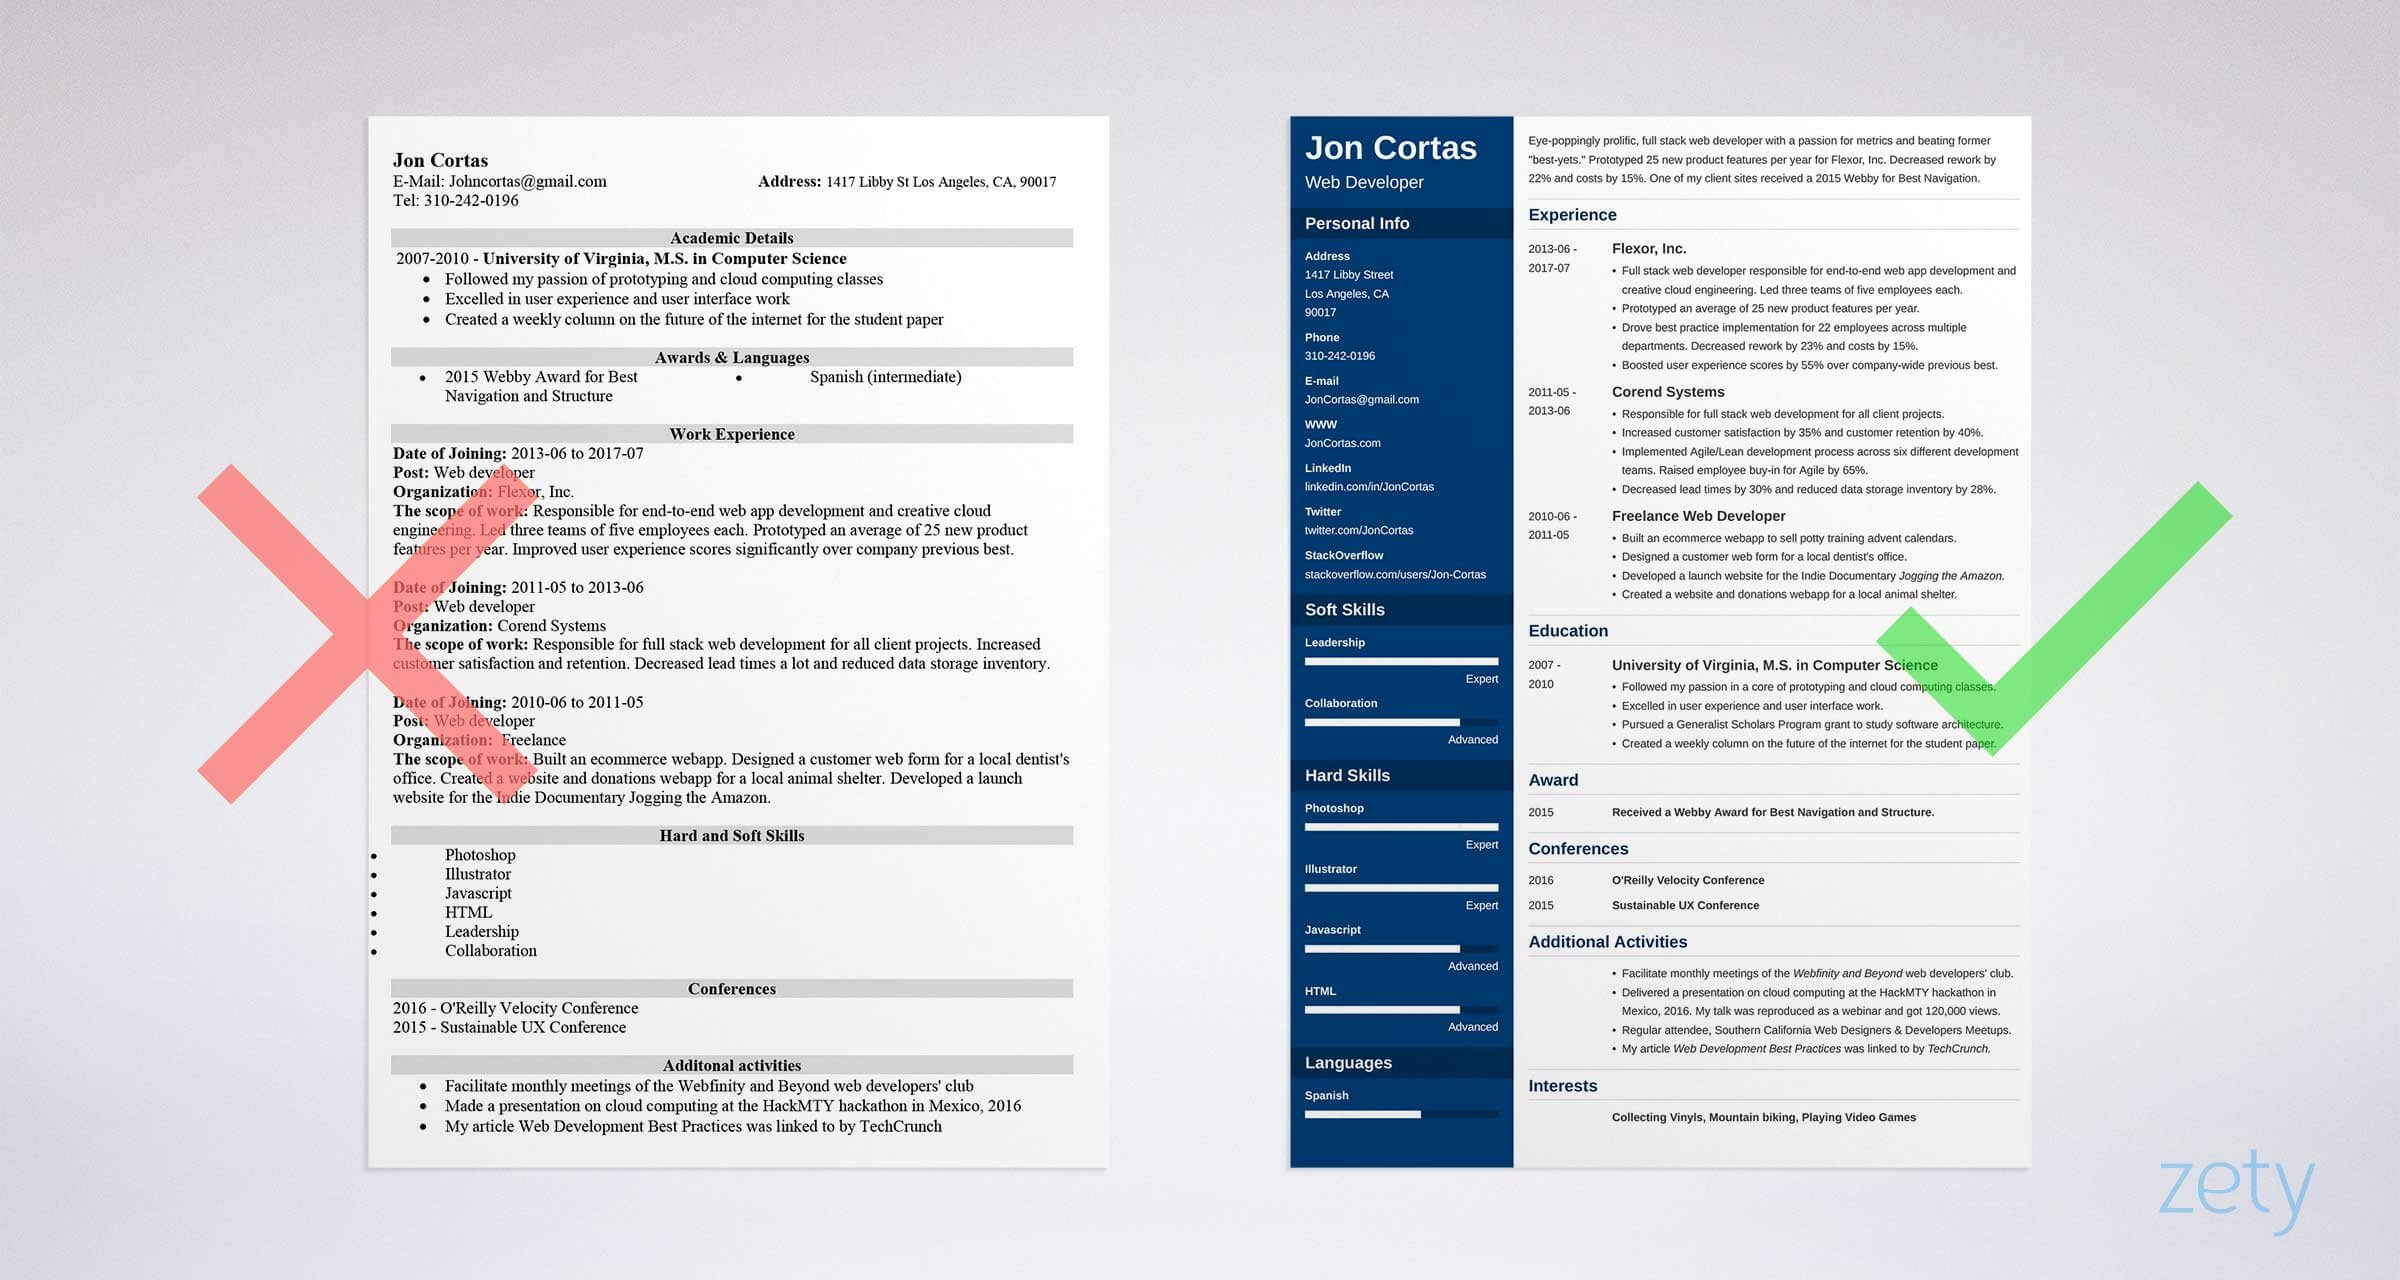 15+ Resume Templates For Microsoft Word [Free Download] Inside Resume Templates Word 2013